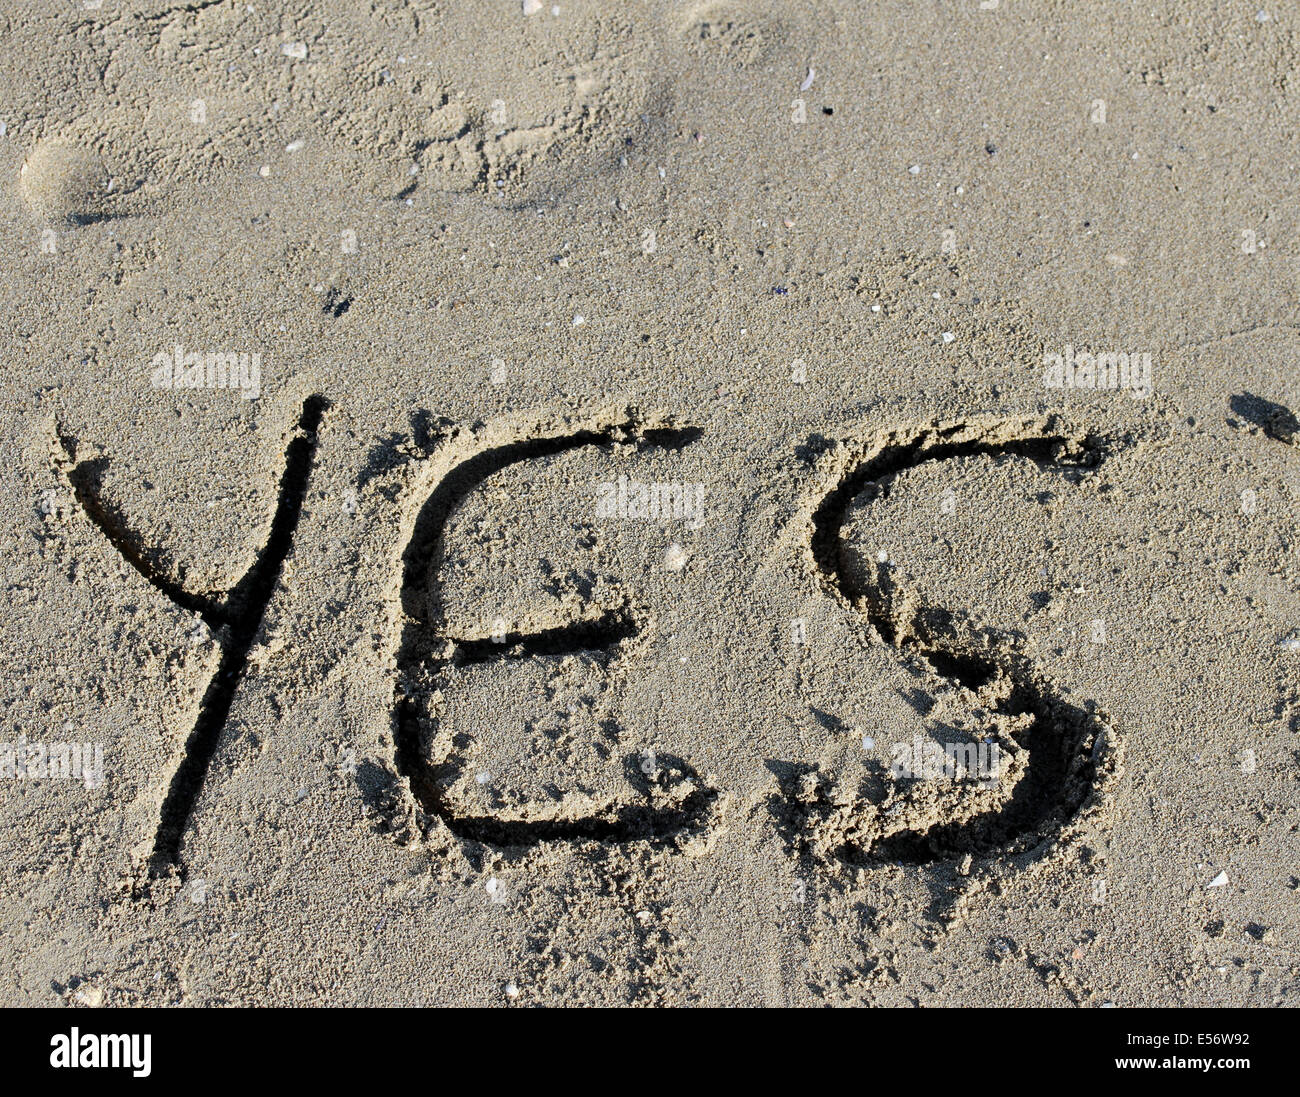 great written YES engraved on the sand of the Sea Beach - Stock Image